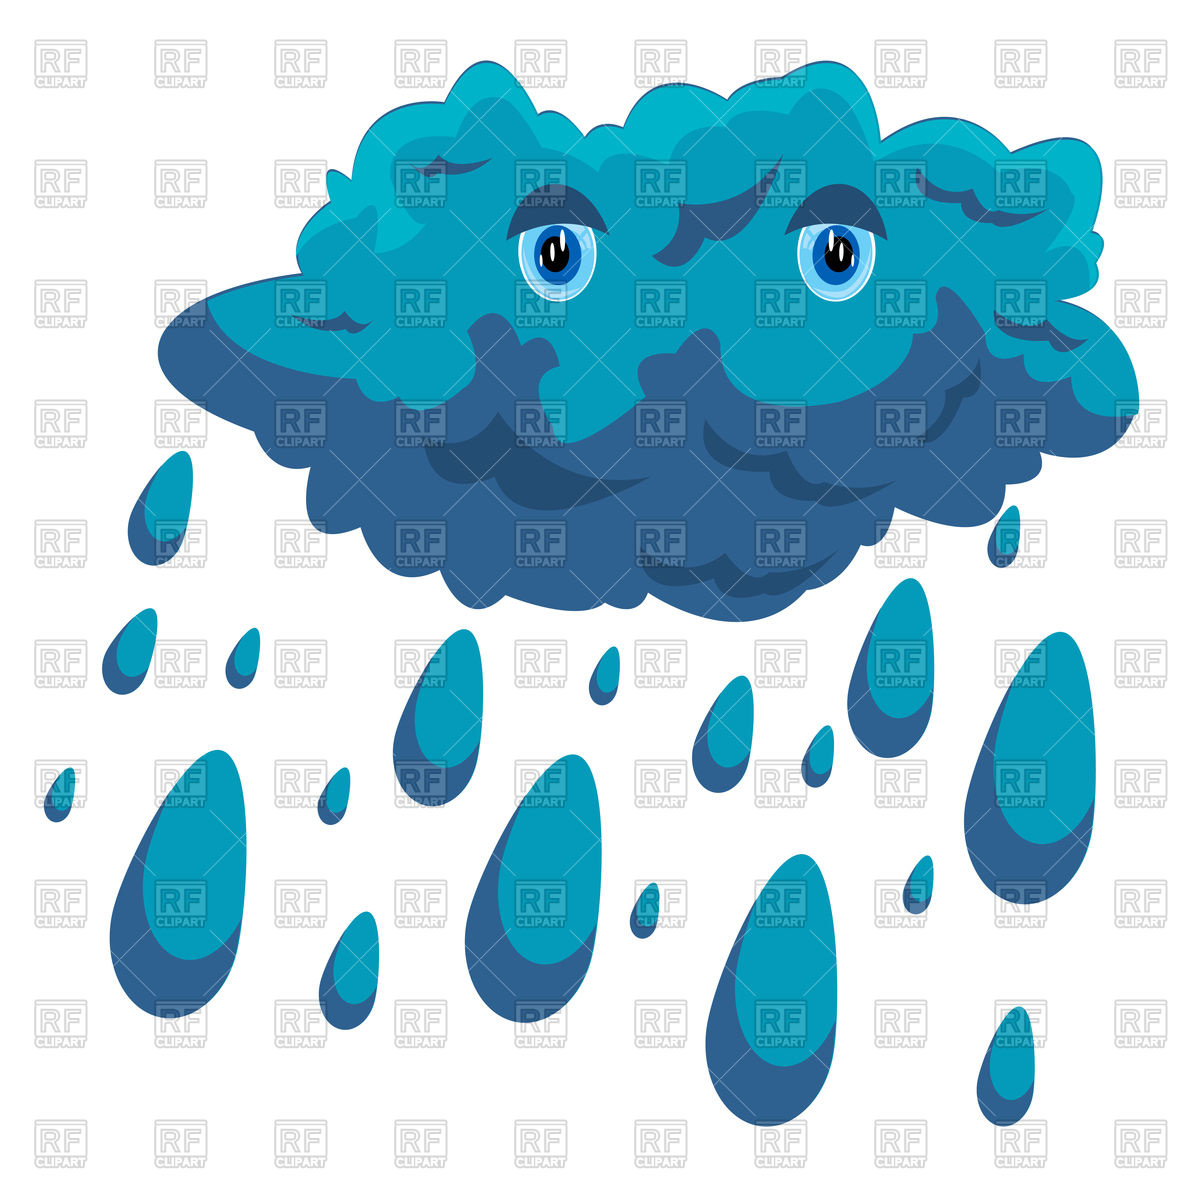 Rainy cloud Vector Image #91427.